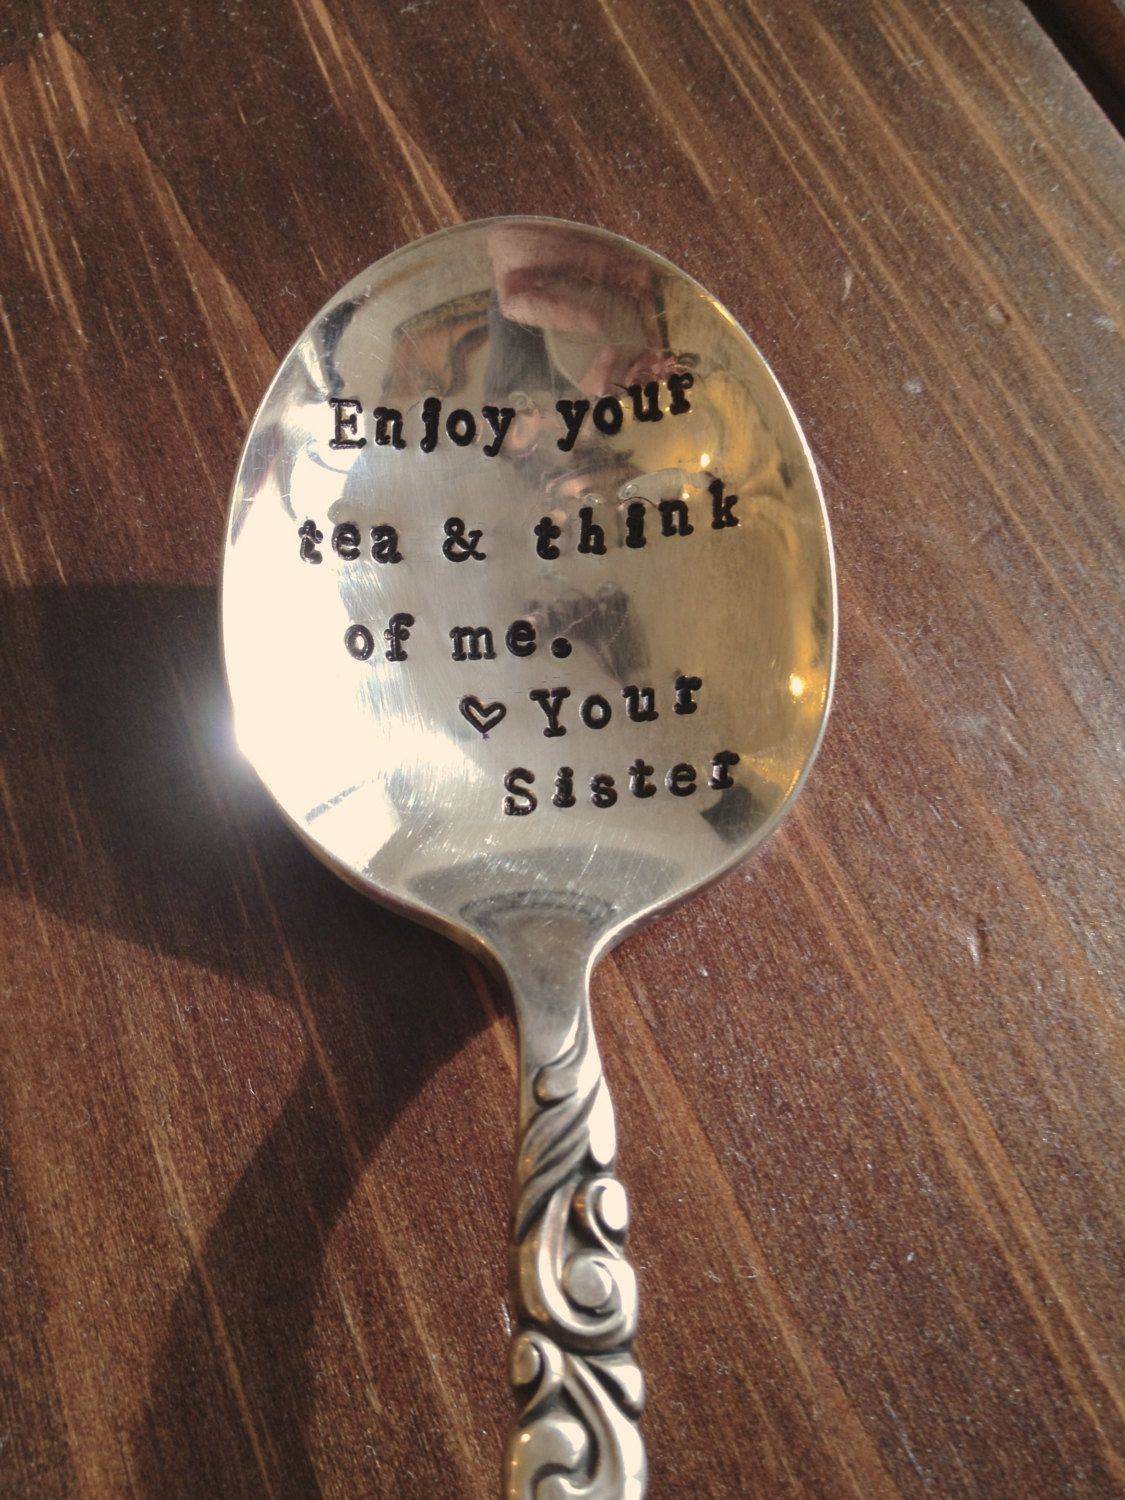 Enjoy your tea and think of me  - Vintage Gift - Hand Stamped Spoon - 2012 Original forsuchatimedesigns. $16.00, via Etsy.